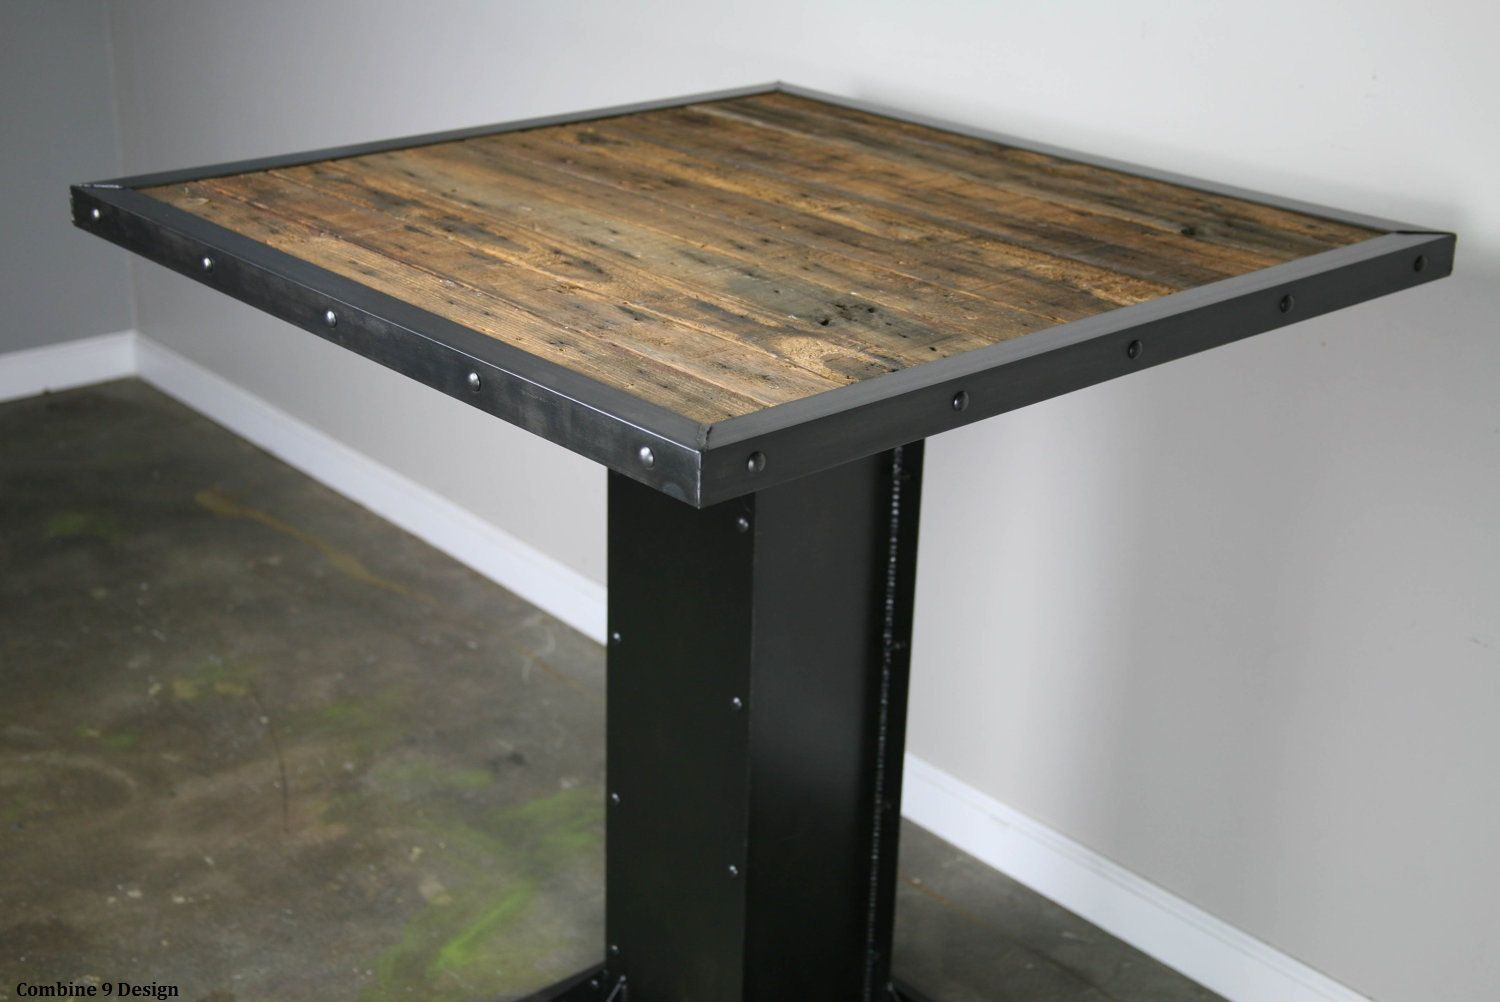 Post industrial conference table vintage industrial furniture - Bistro Dining Table Modern Industrial Design By